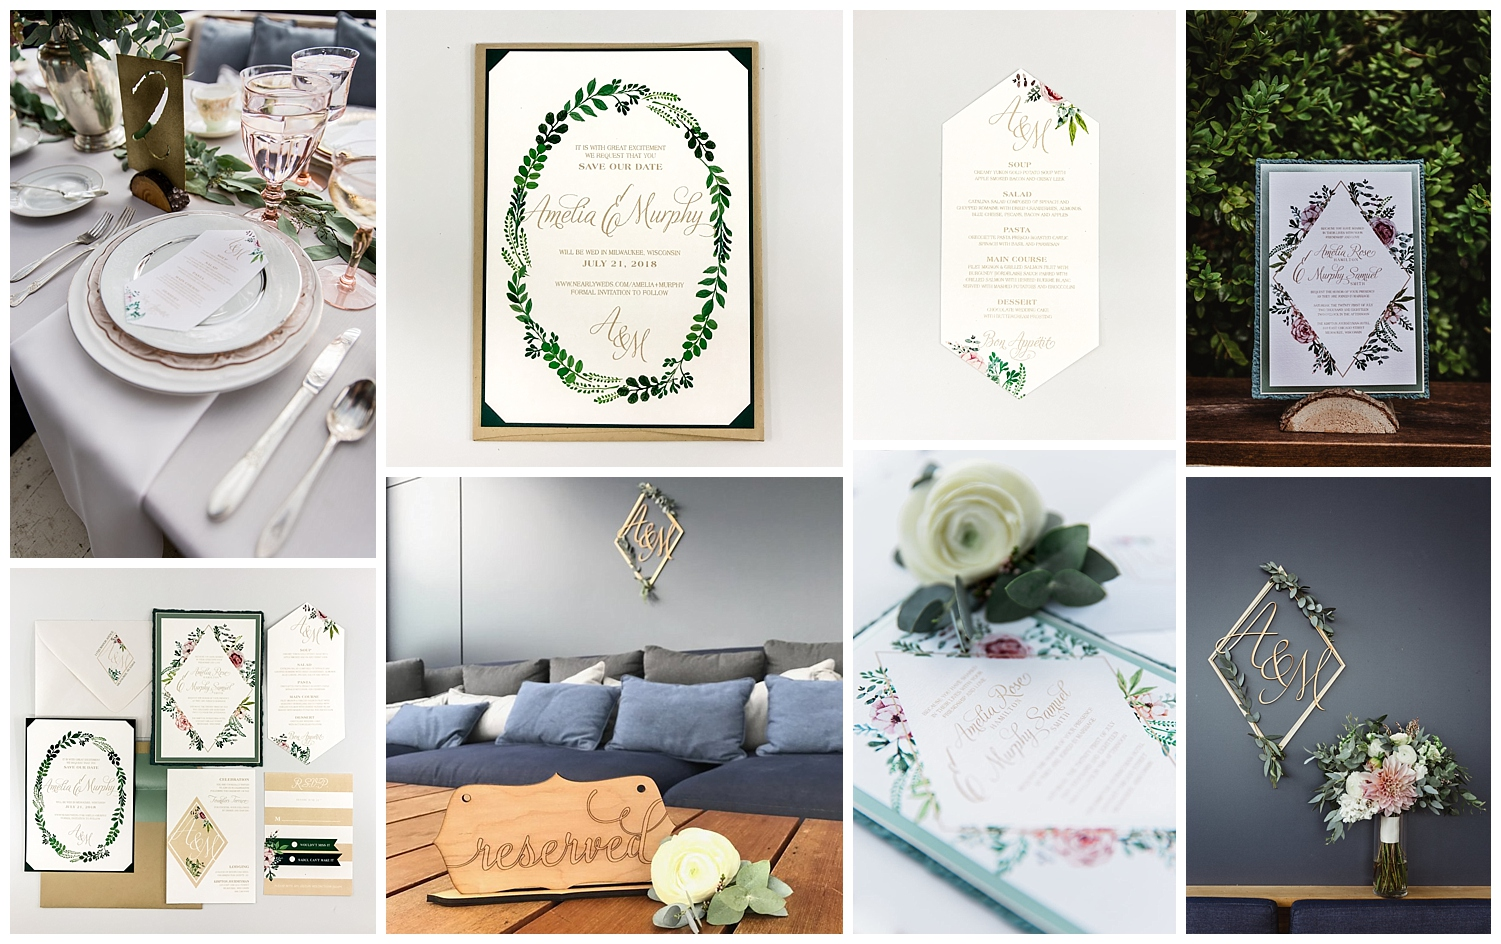 We love the cohesive floral set we designed for this styled shoot! The incorporation of a variety of visual pieces that all match in some way really display a certain aesthetic and atmosphere. Photos by Happy Takes Photography.